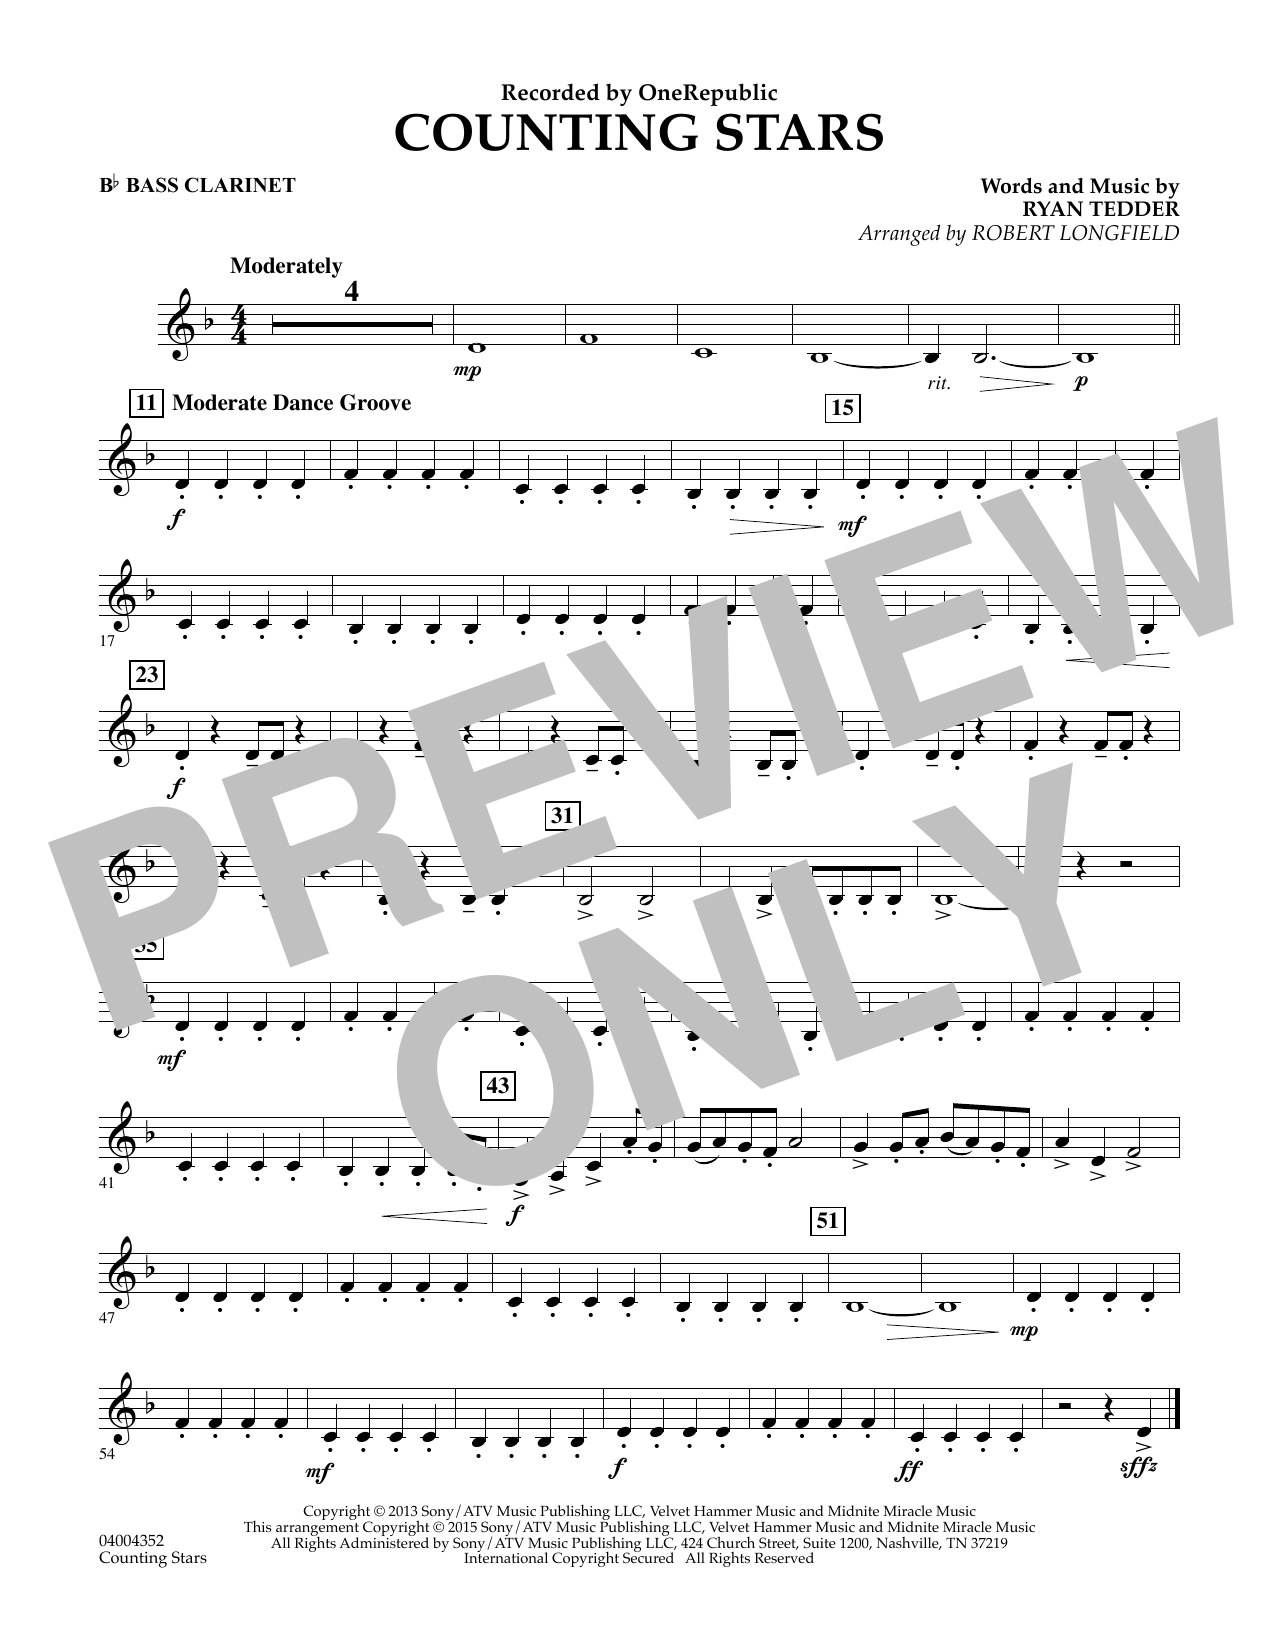 Counting stars bb bass clarinet sheet music to download hexwebz Images